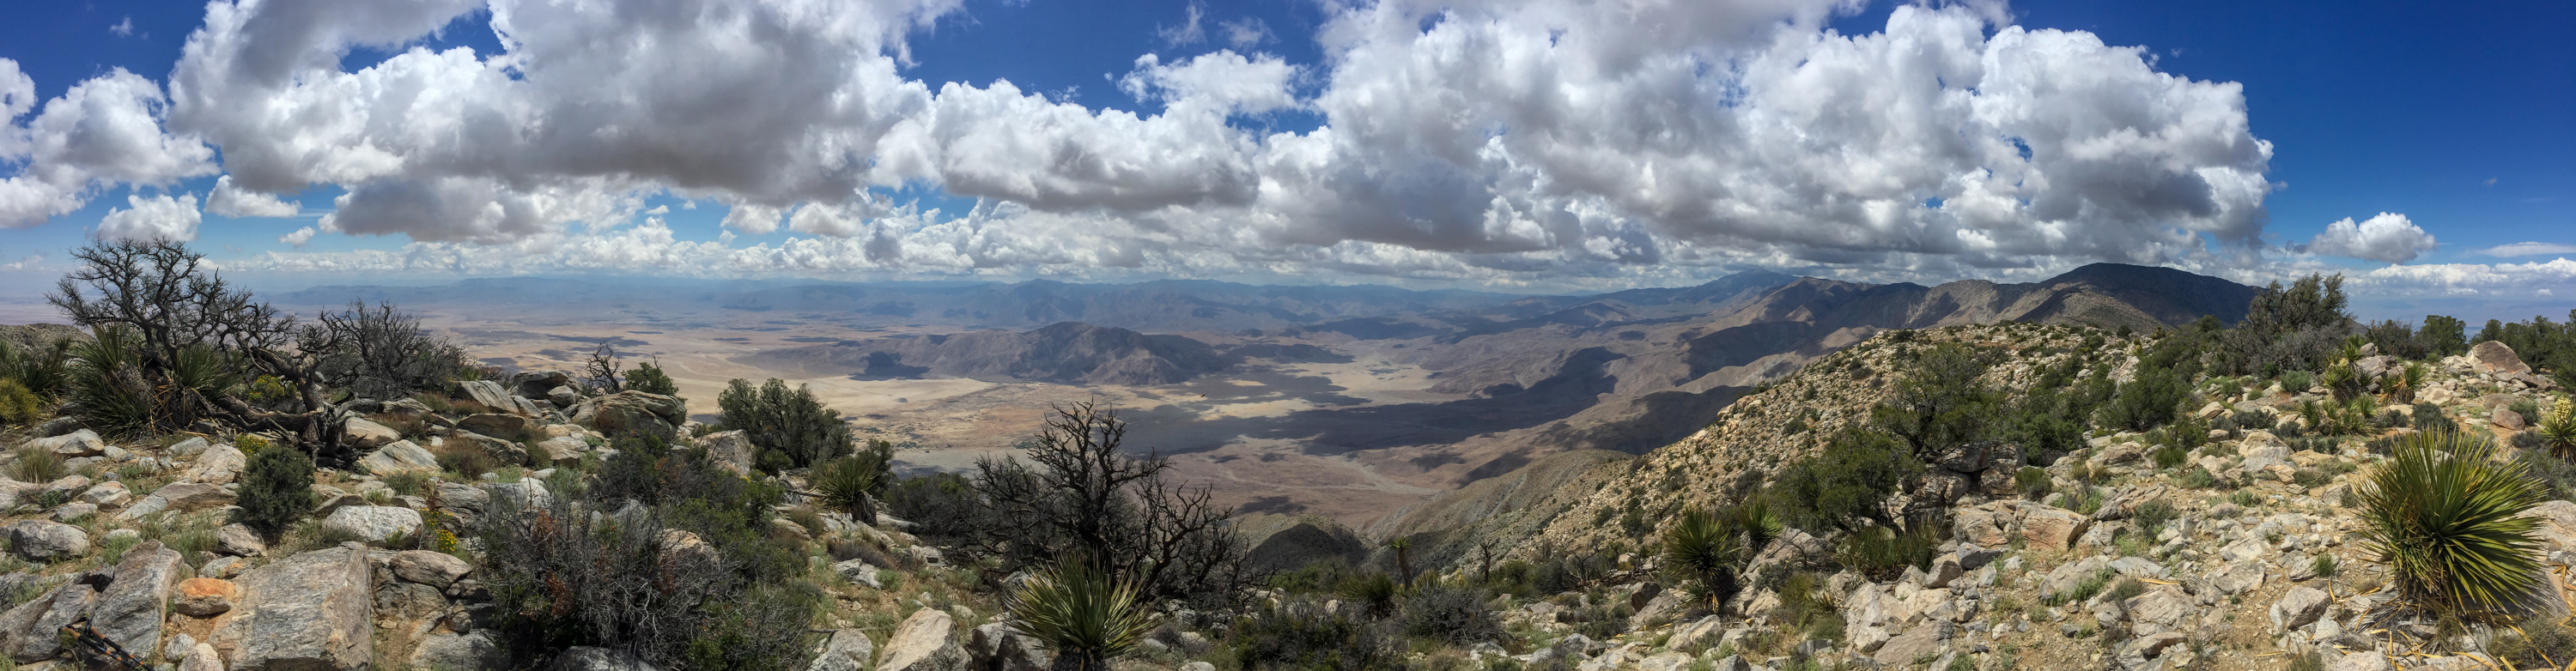 Panoramic view of the Anza Borrego Desert.